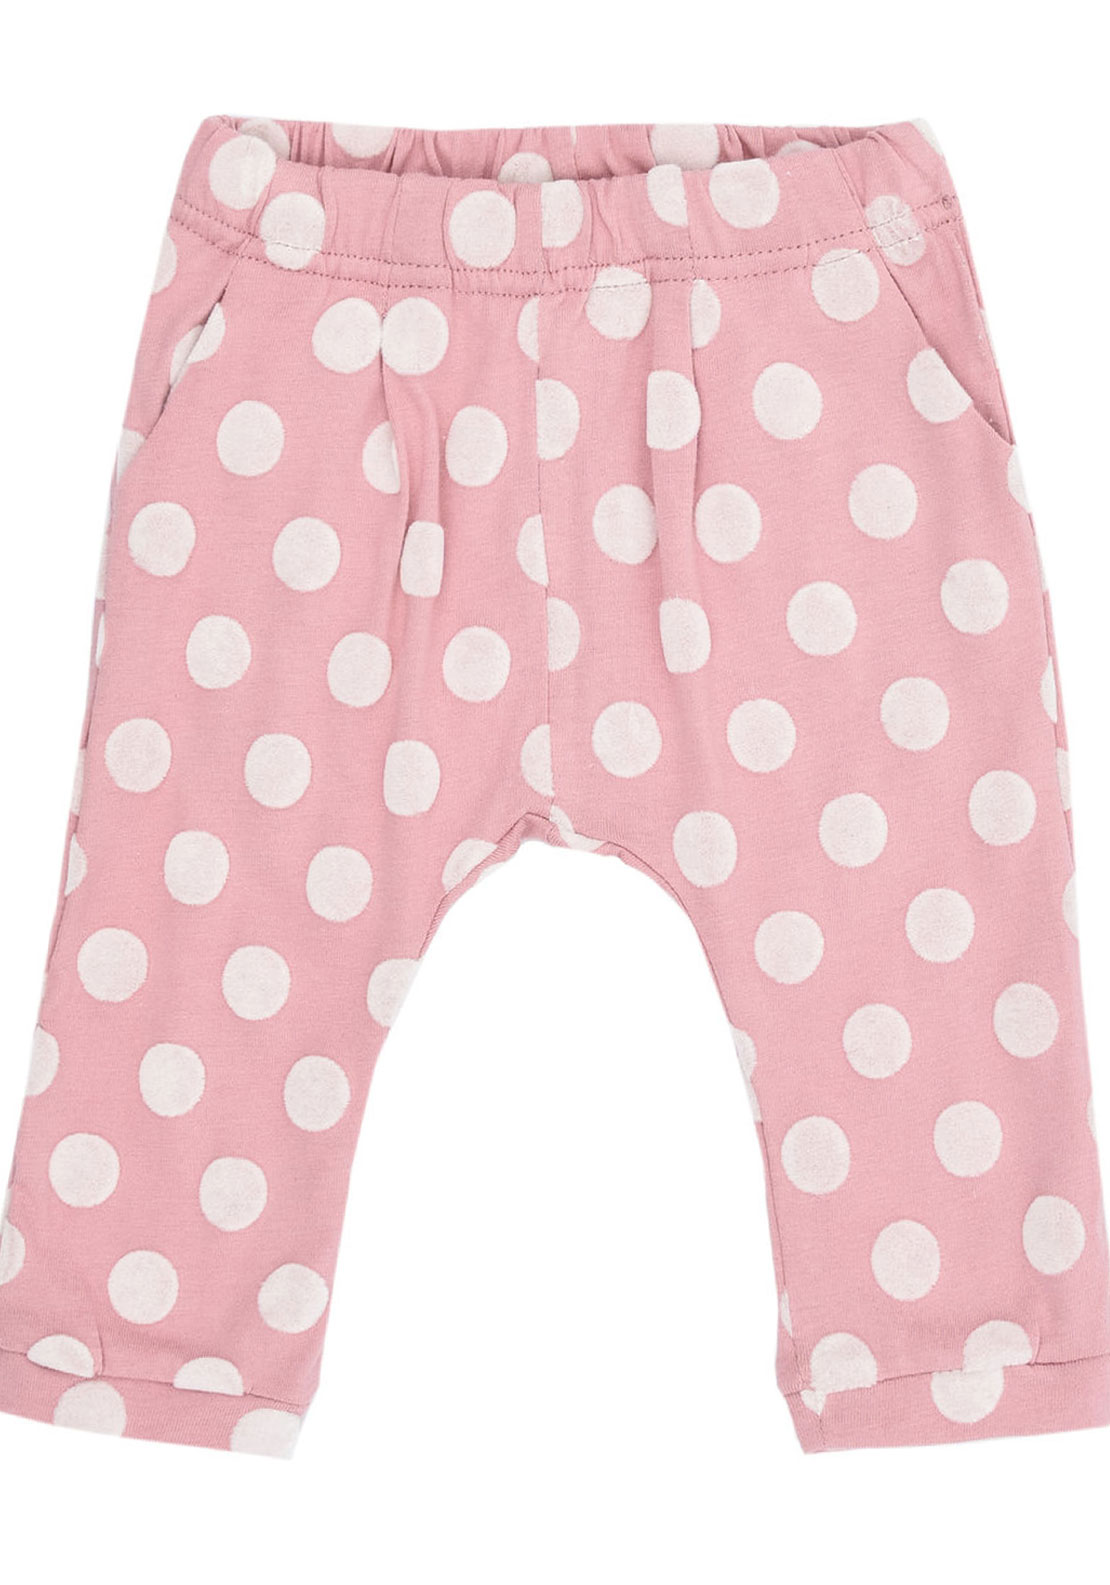 Name It Baby Girls Prik Polka Dot Bottoms, Pink